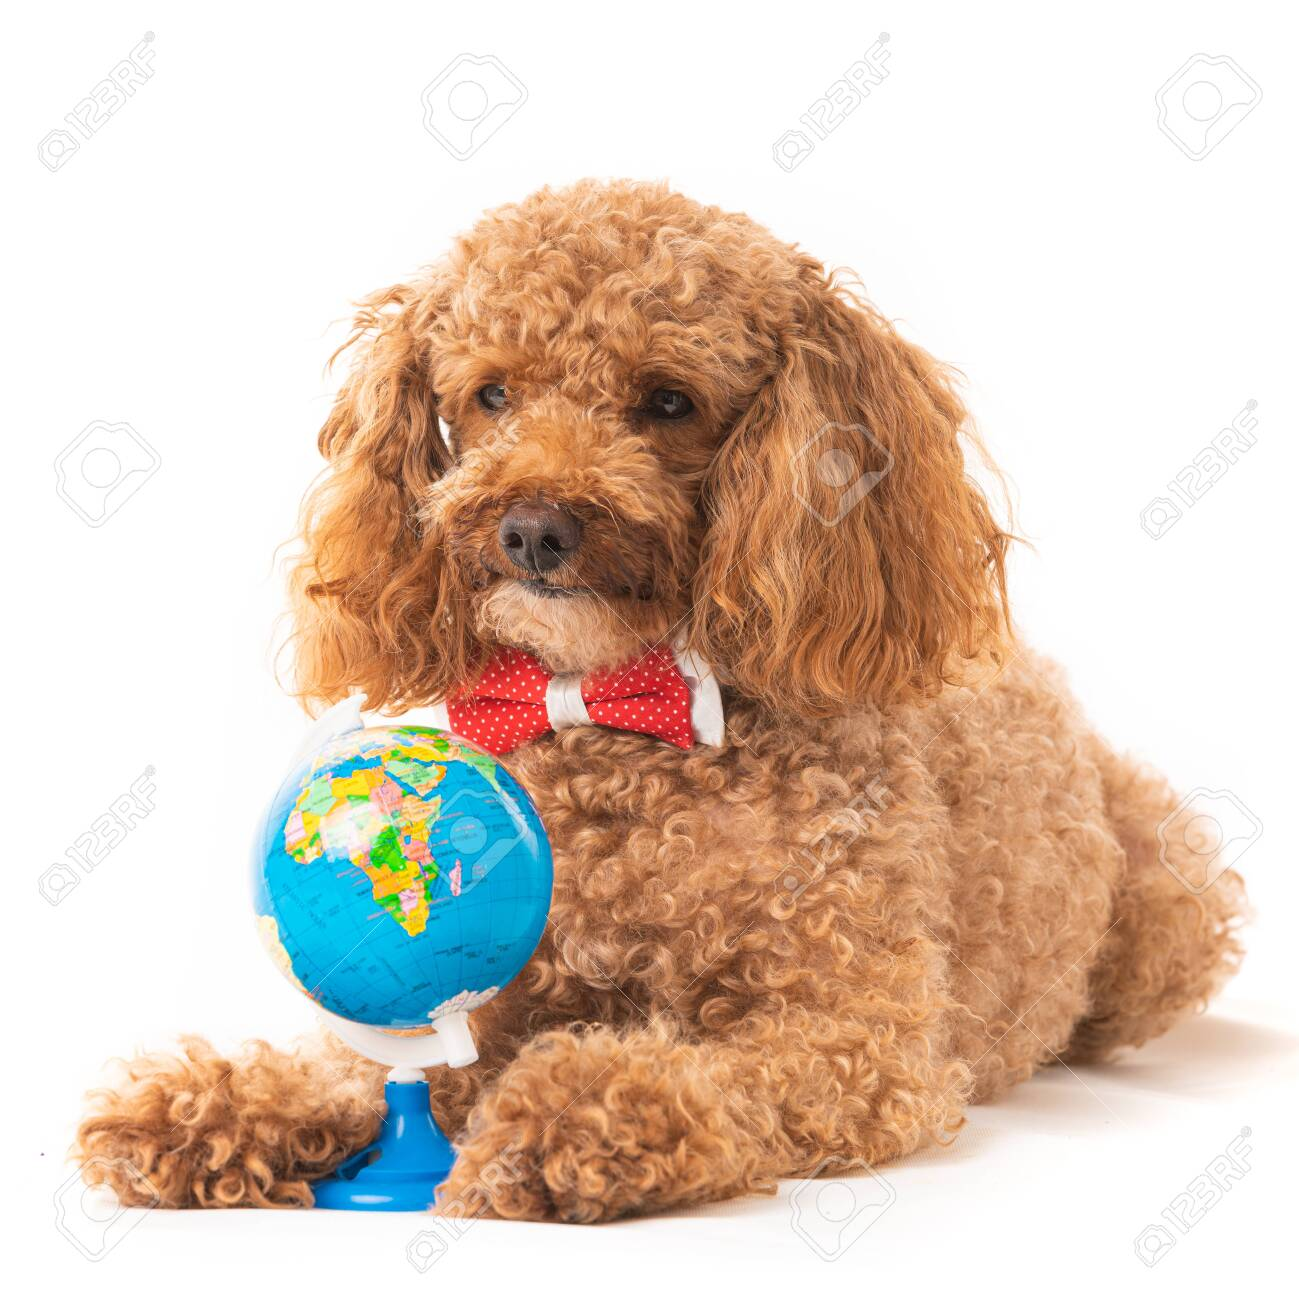 Red Poodle Puppy With A Toy Globe Isolated On White Stock Photo Picture And Royalty Free Image Image 149751245